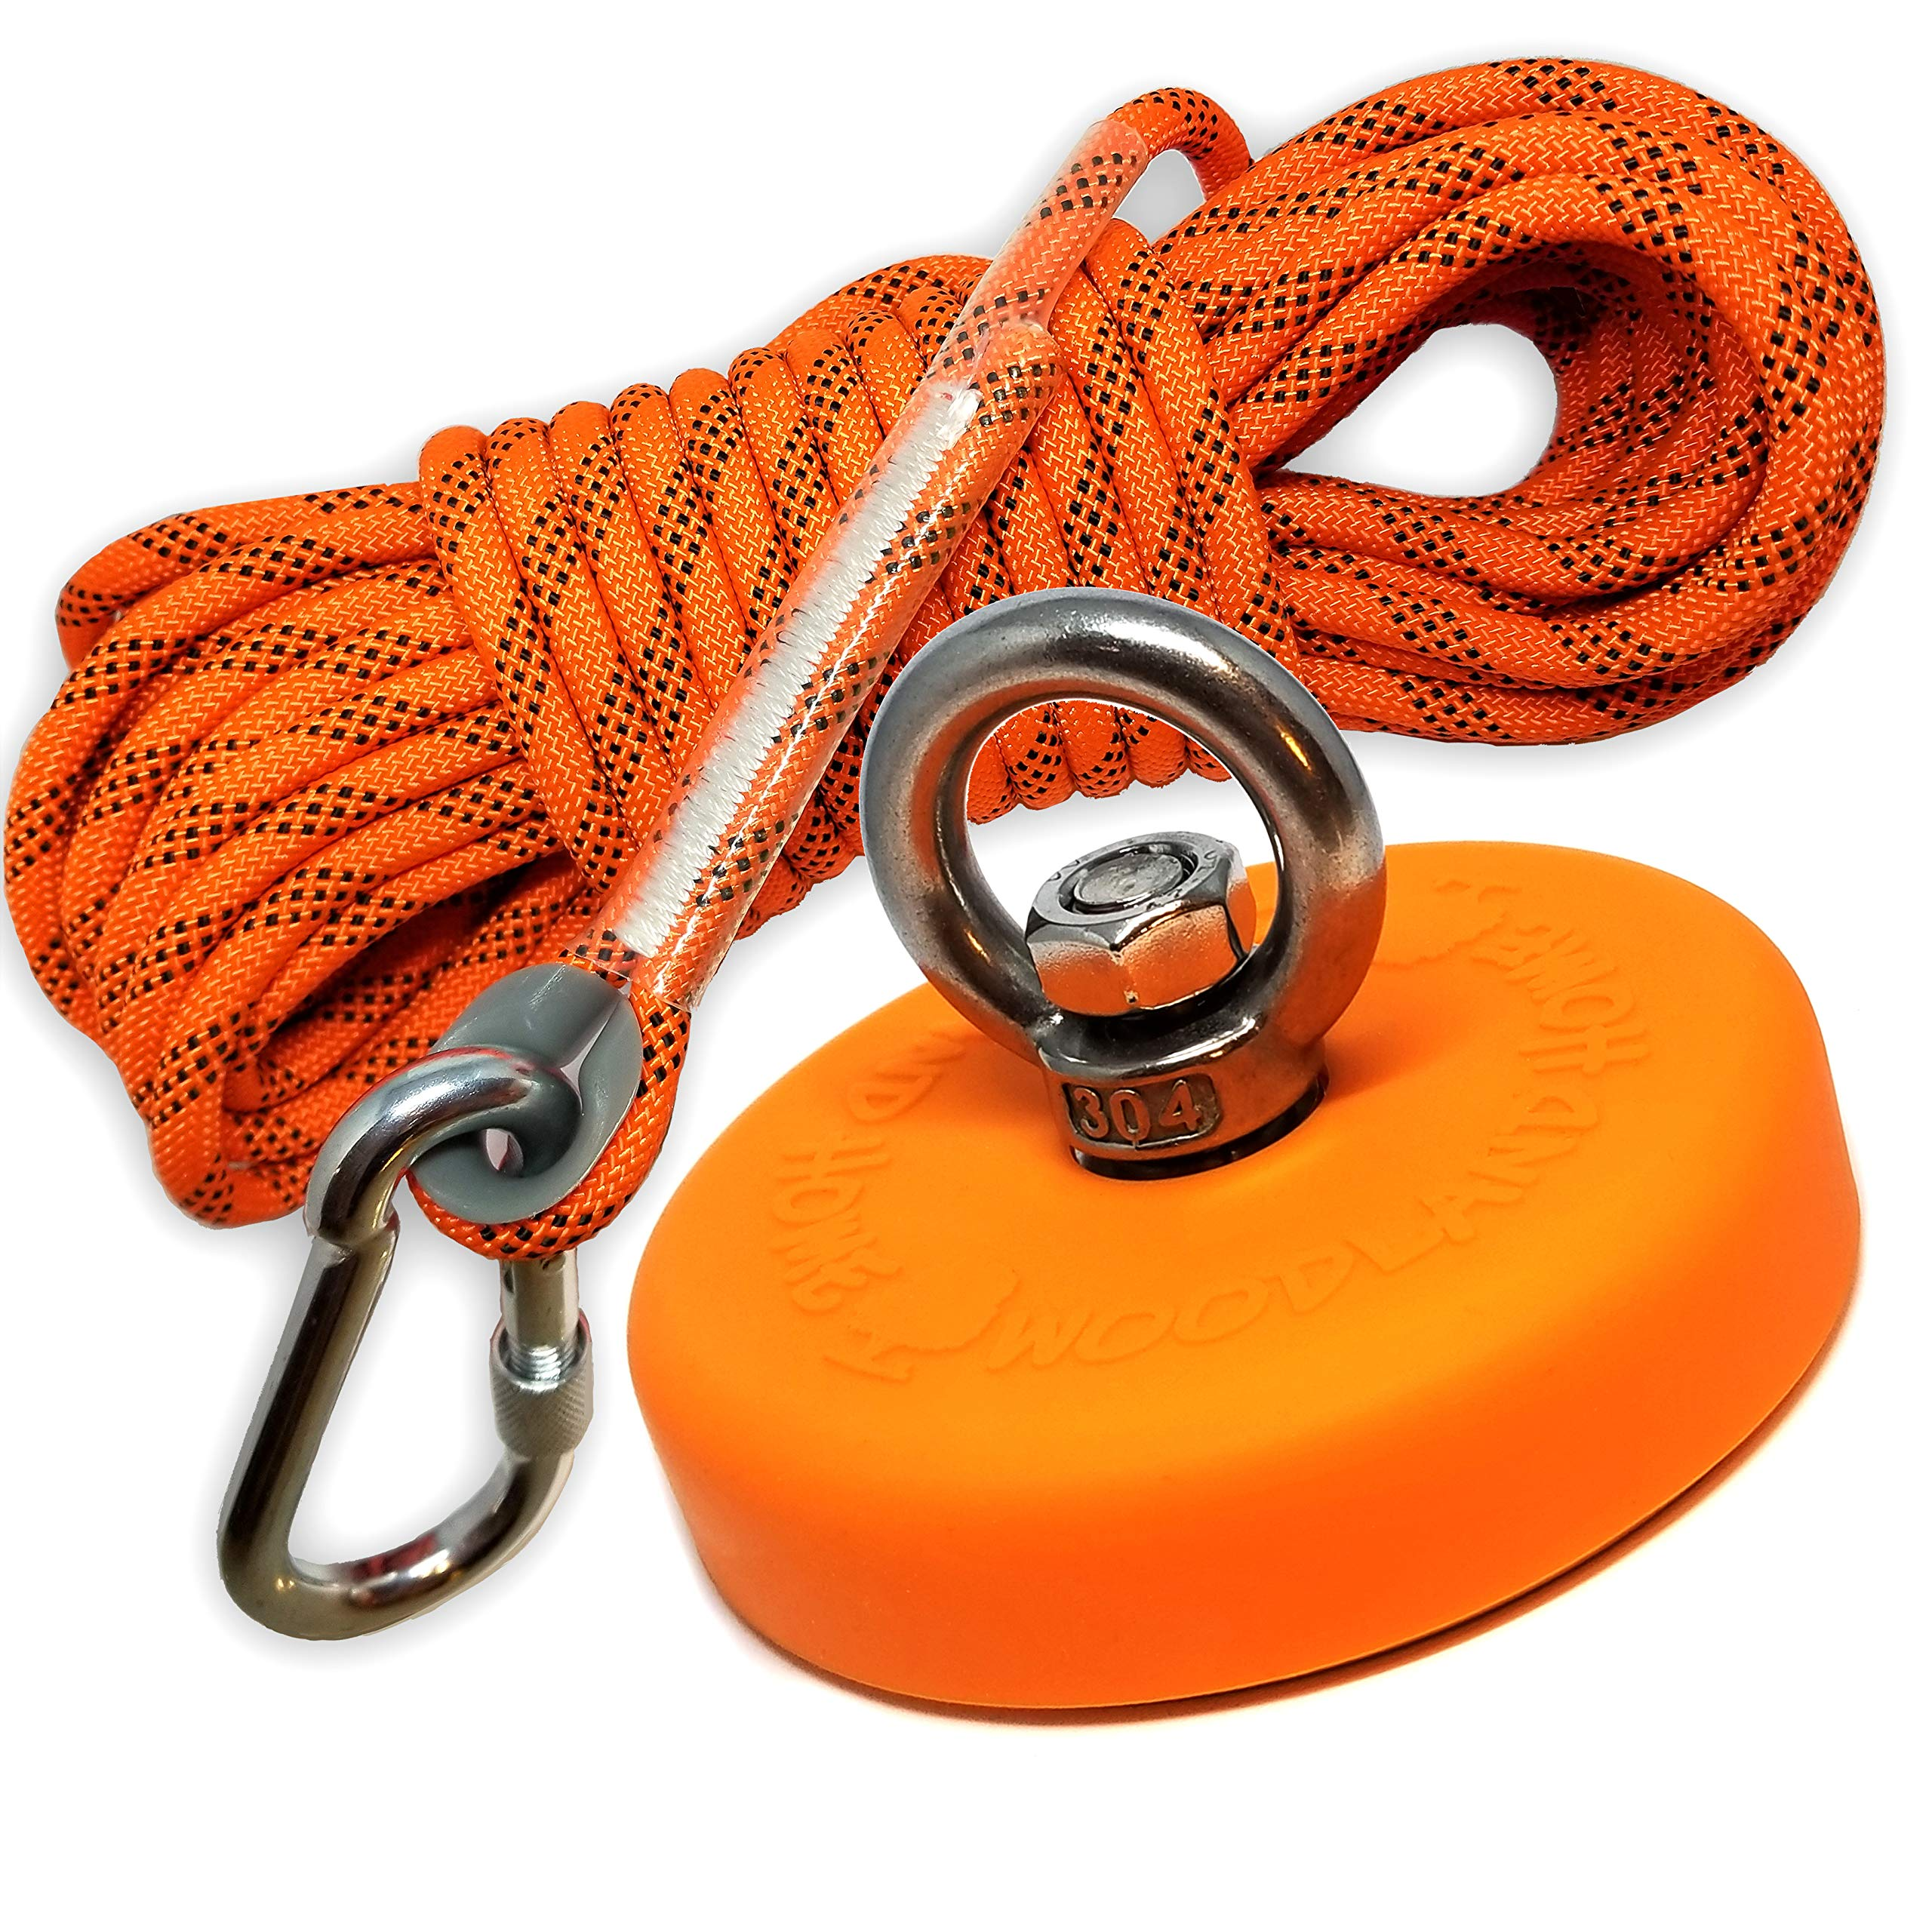 Super Strong Deluxe Fishing Magnet 880LB & Rope Kit   Rope Over 2000 LB Strong   Magnet 880lb (400KG) Pull   Durable Orange Rubber   Neodymium Rare Earth Magnet 3.54 inch(90 mm) for Magnet Fishing ... by Woodland Home